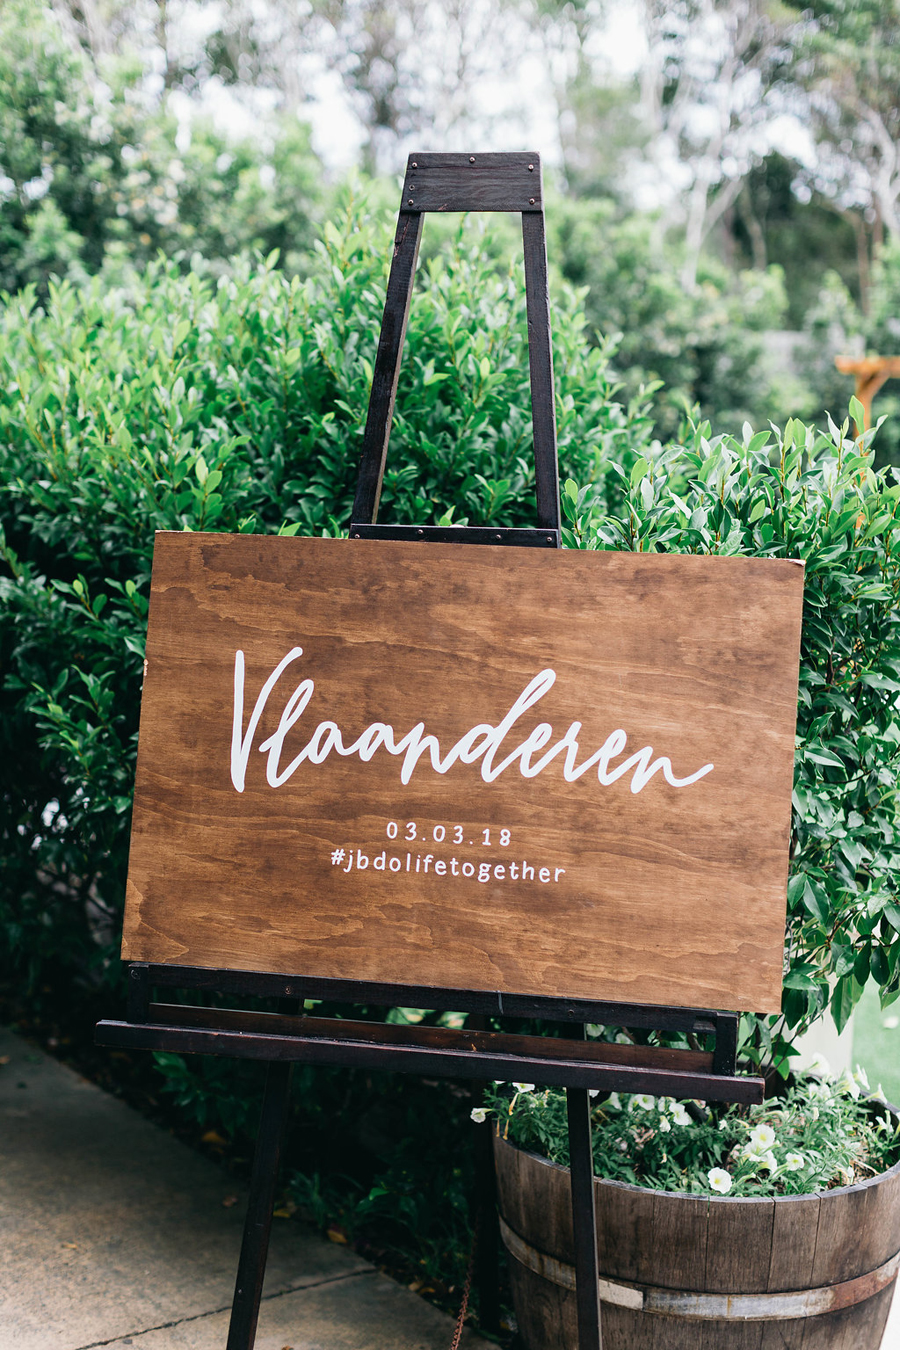 tweed-coast-weddings-wedding-venue-osteria-casuarina-figtree-pictures-photography-brittney-and-justin018.jpg